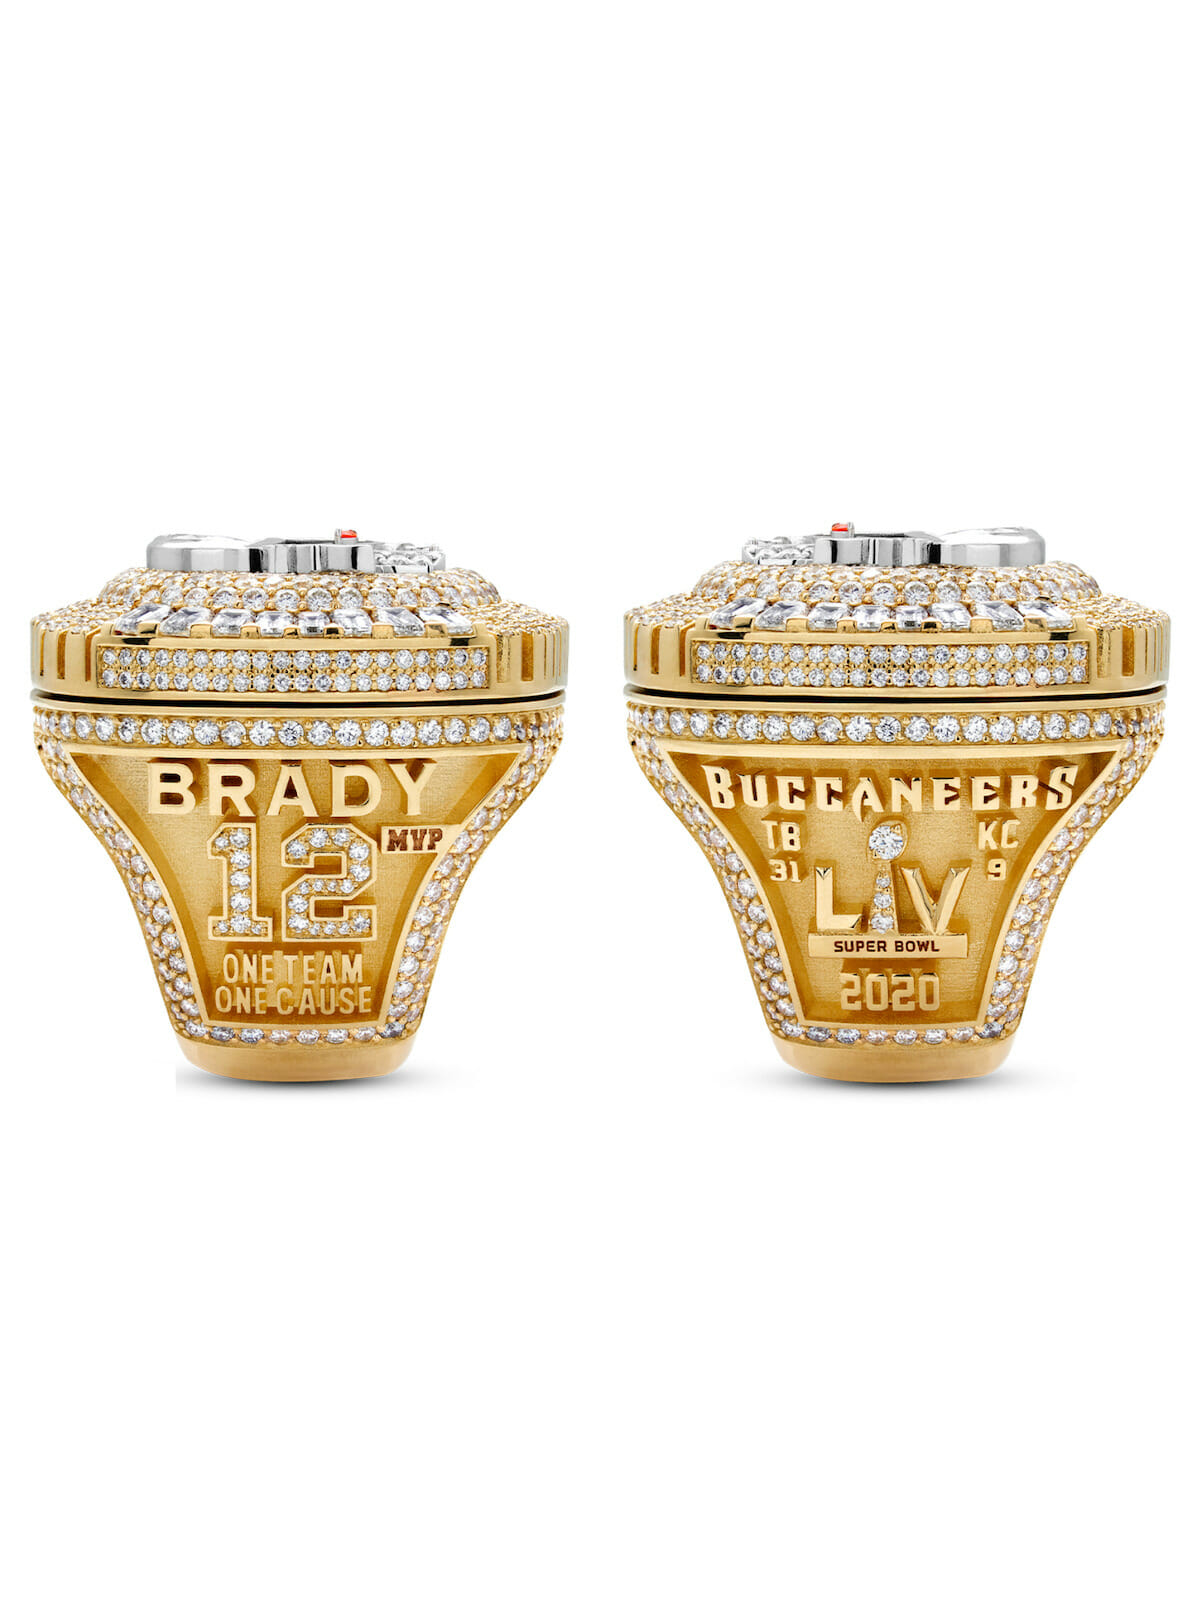 Side of the Tampa Bay Buccaneers Super Bowl Ring